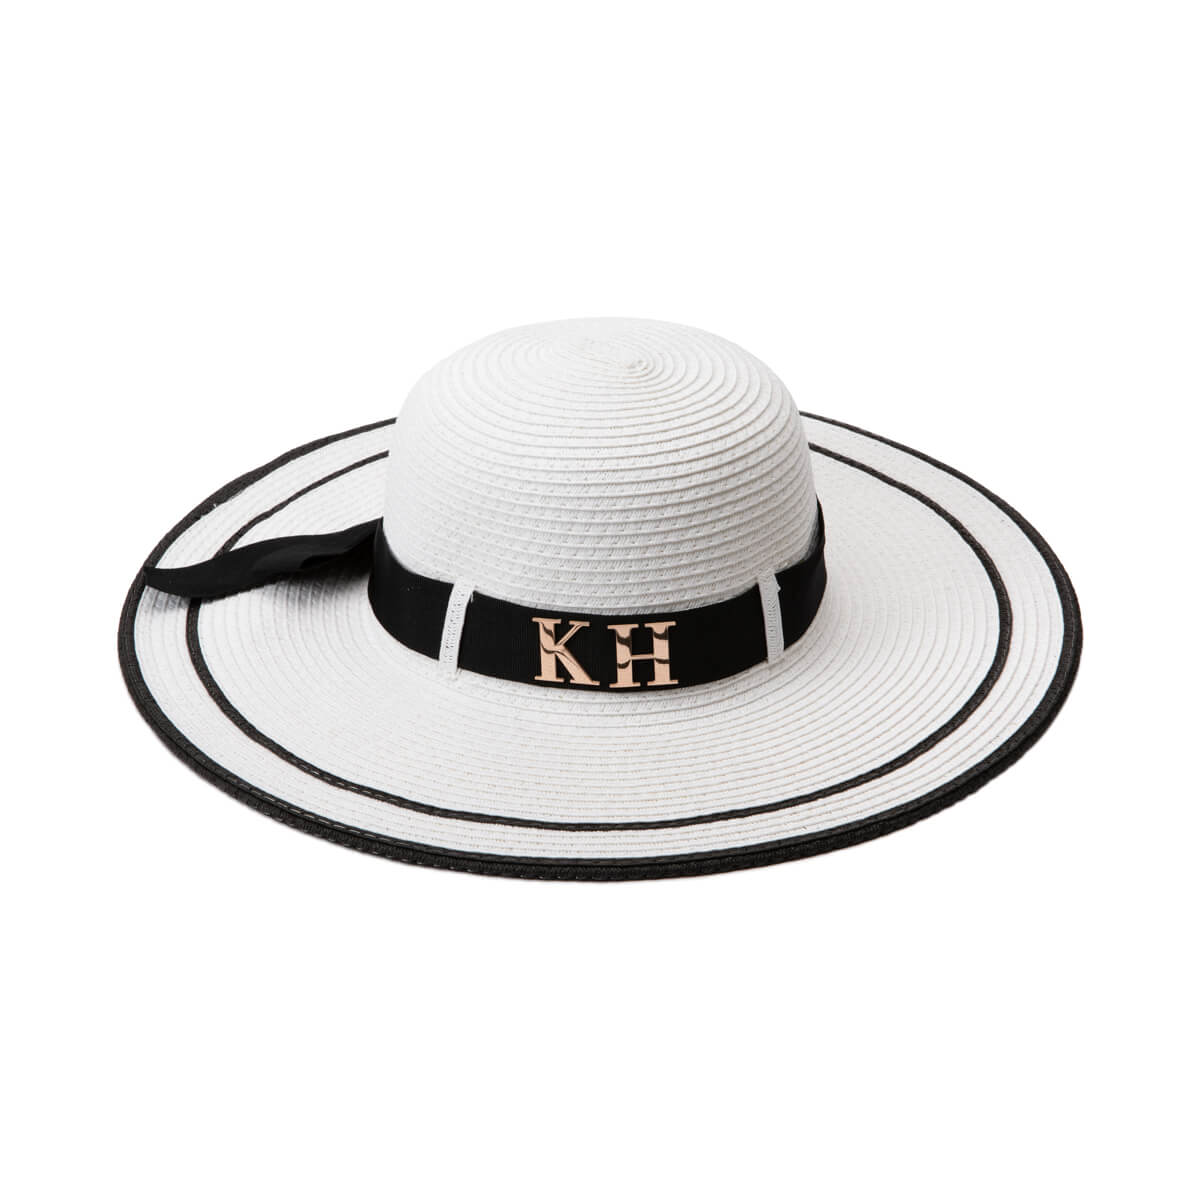 White Resort Wide Brim Hat